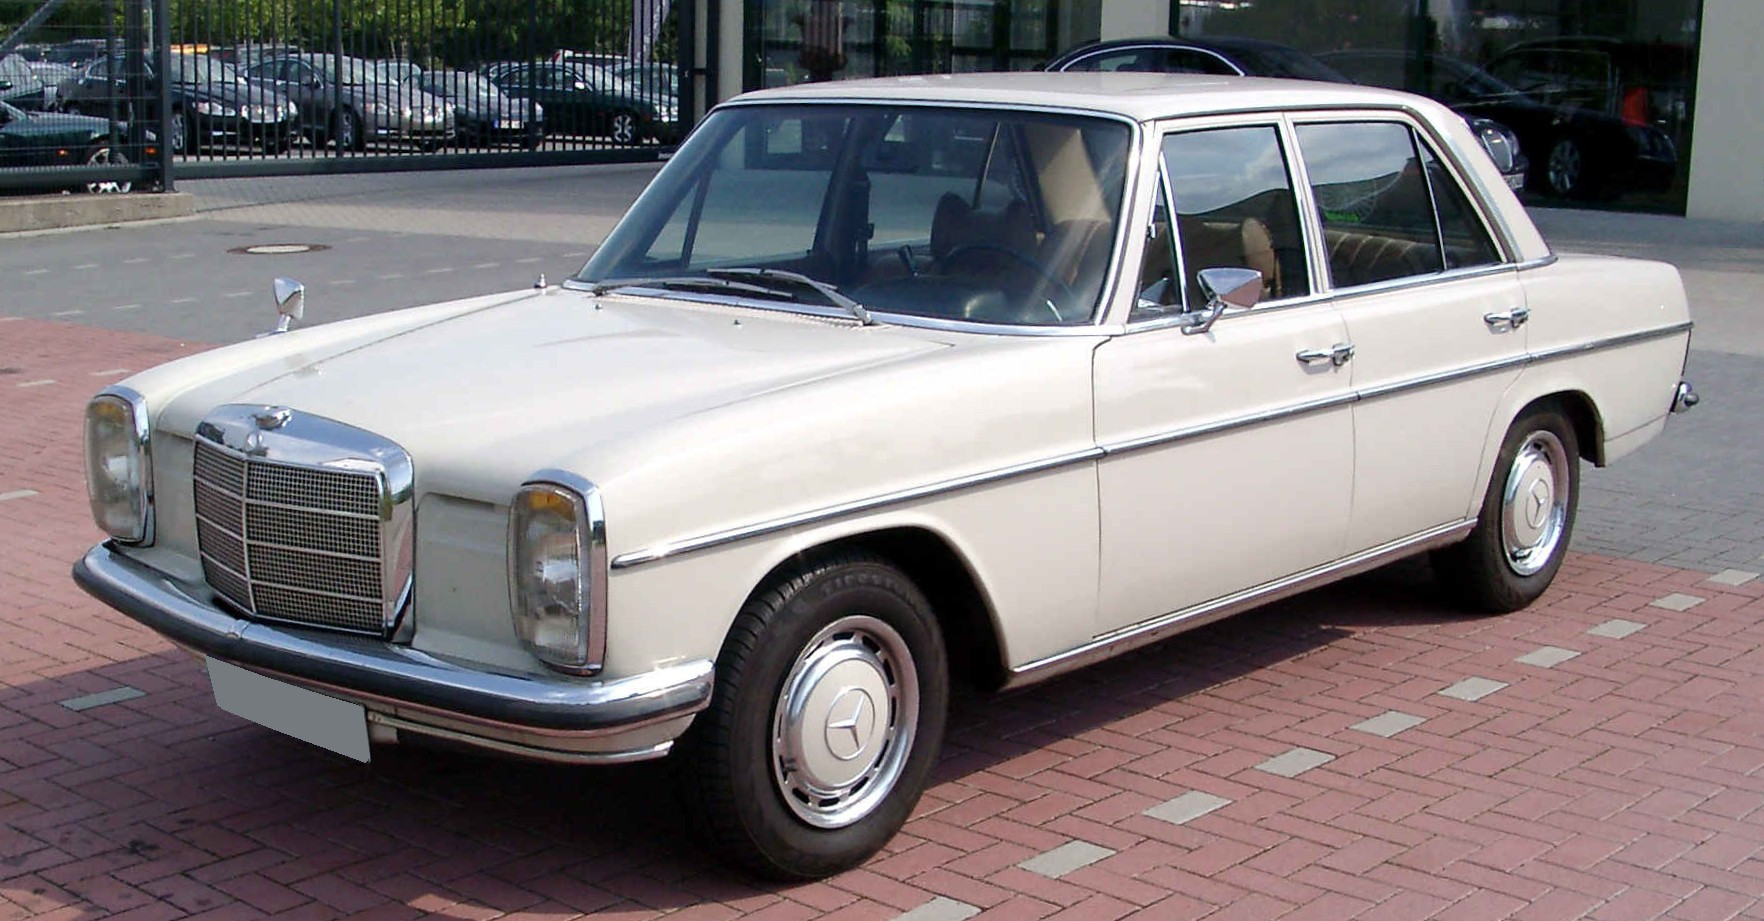 File:Mercedes-Benz W115 front 20080816.jpg - Wikimedia Commons